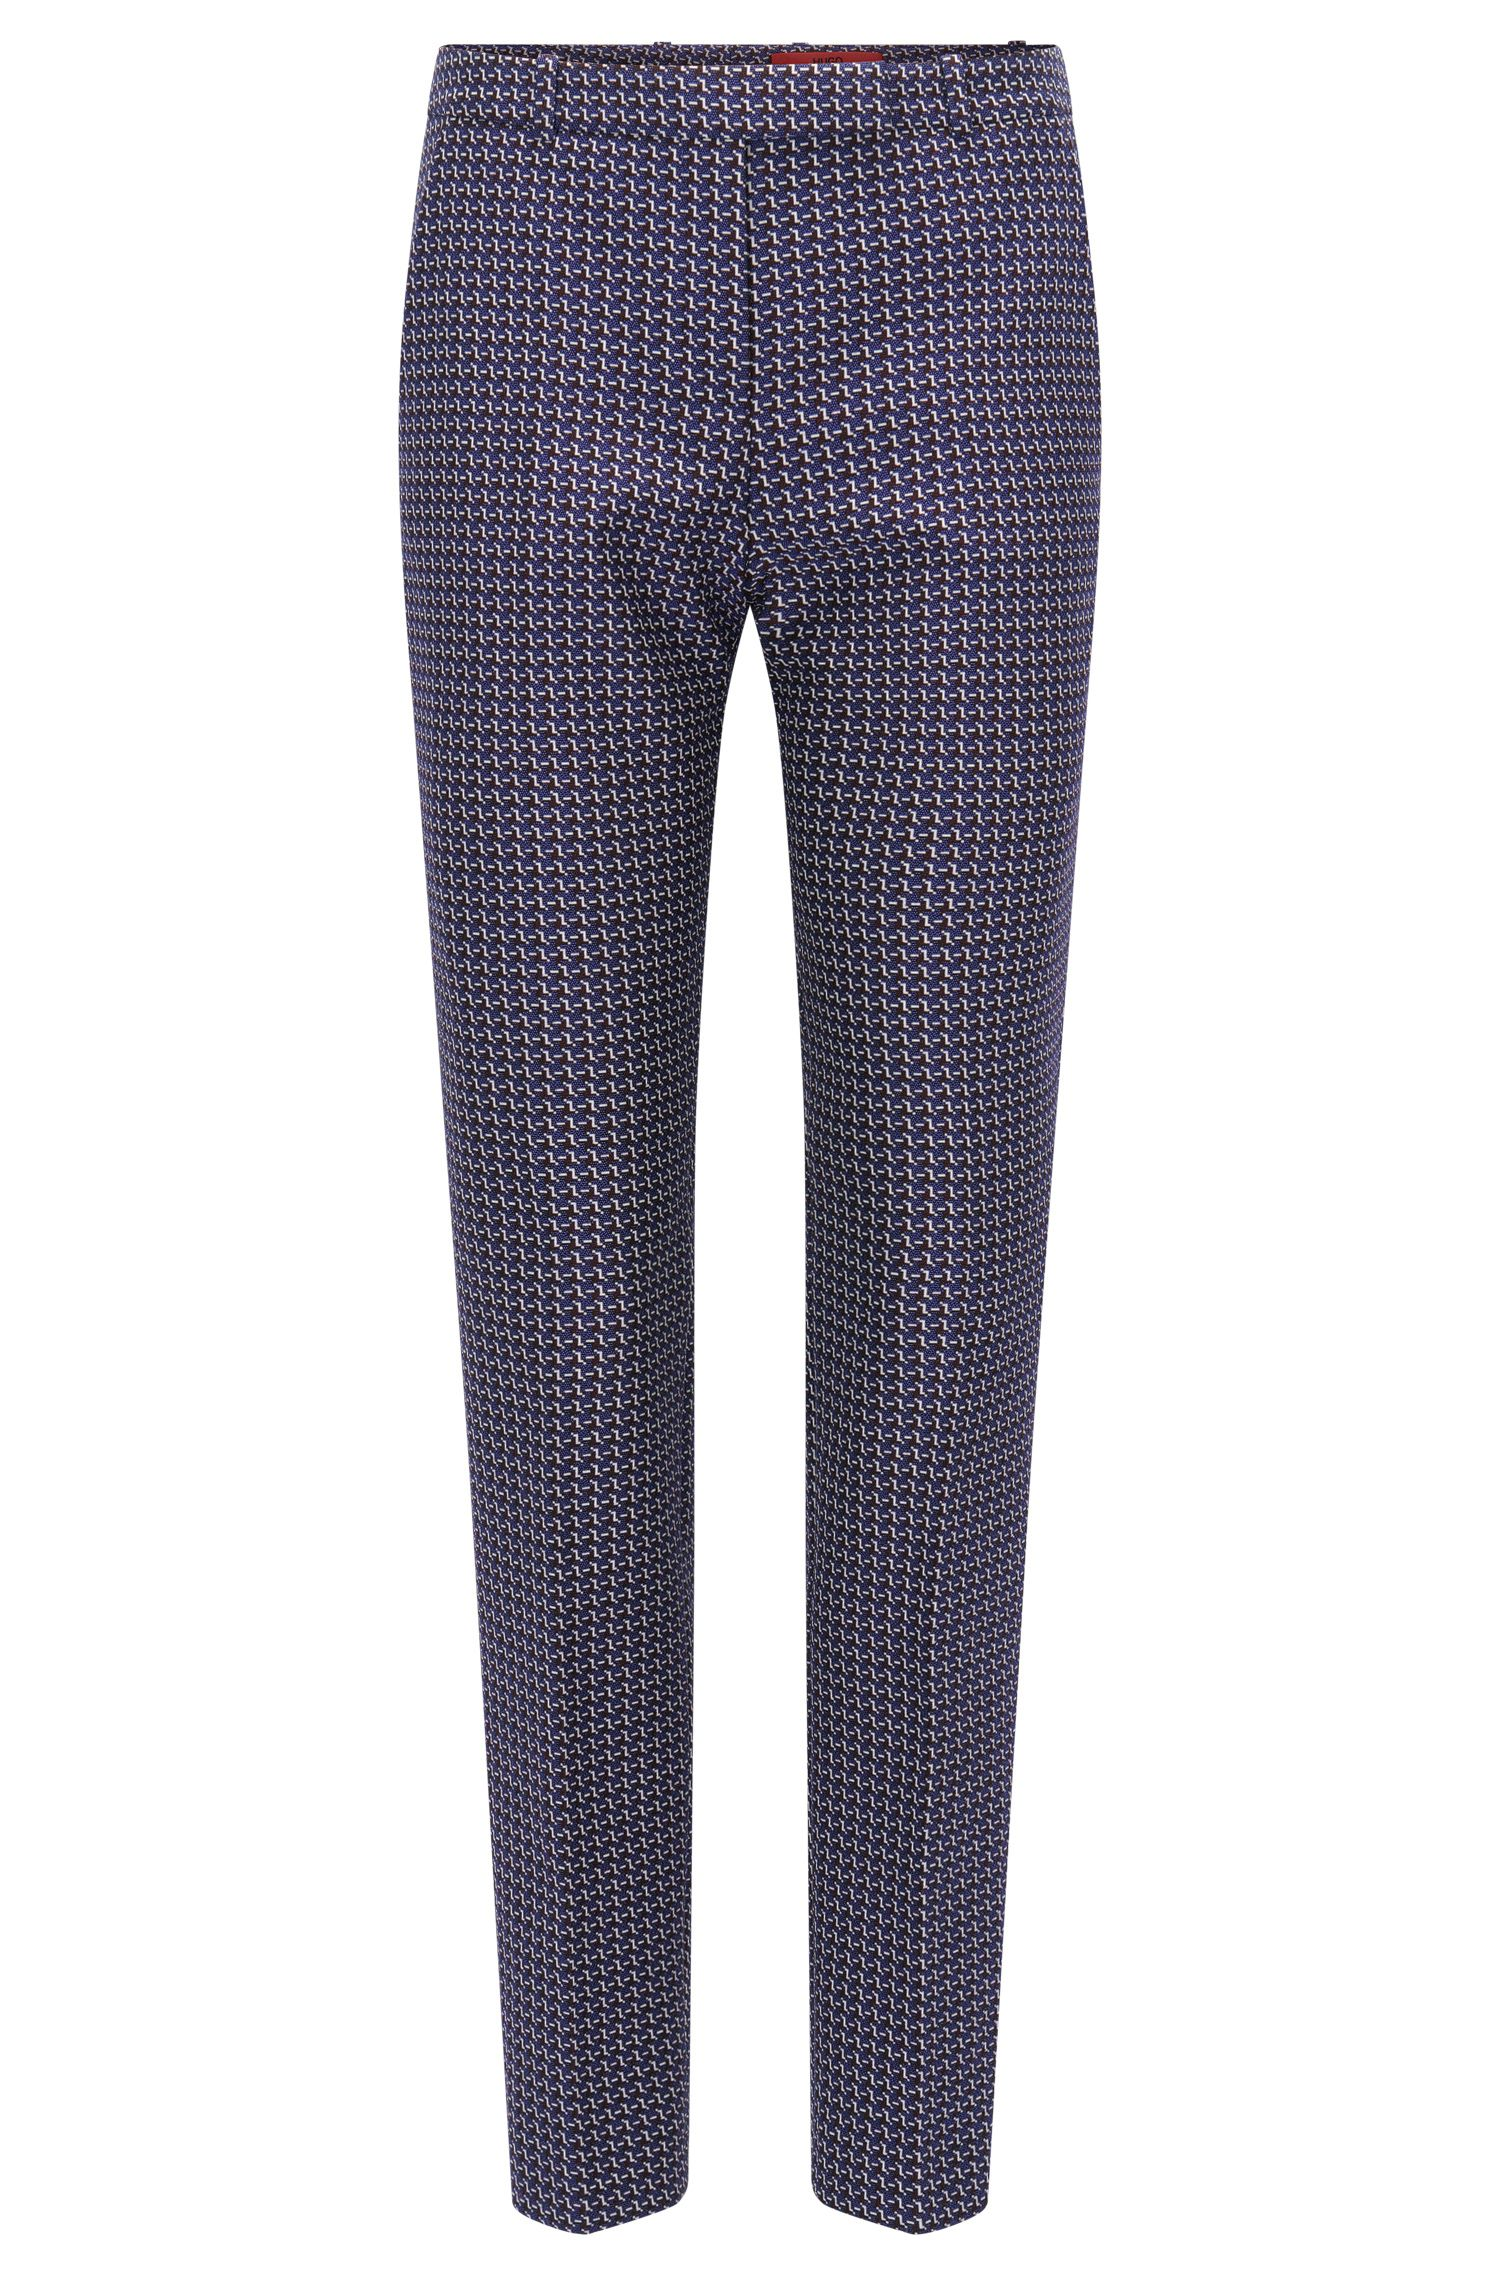 Regular-fit trousers in graphic jacquard